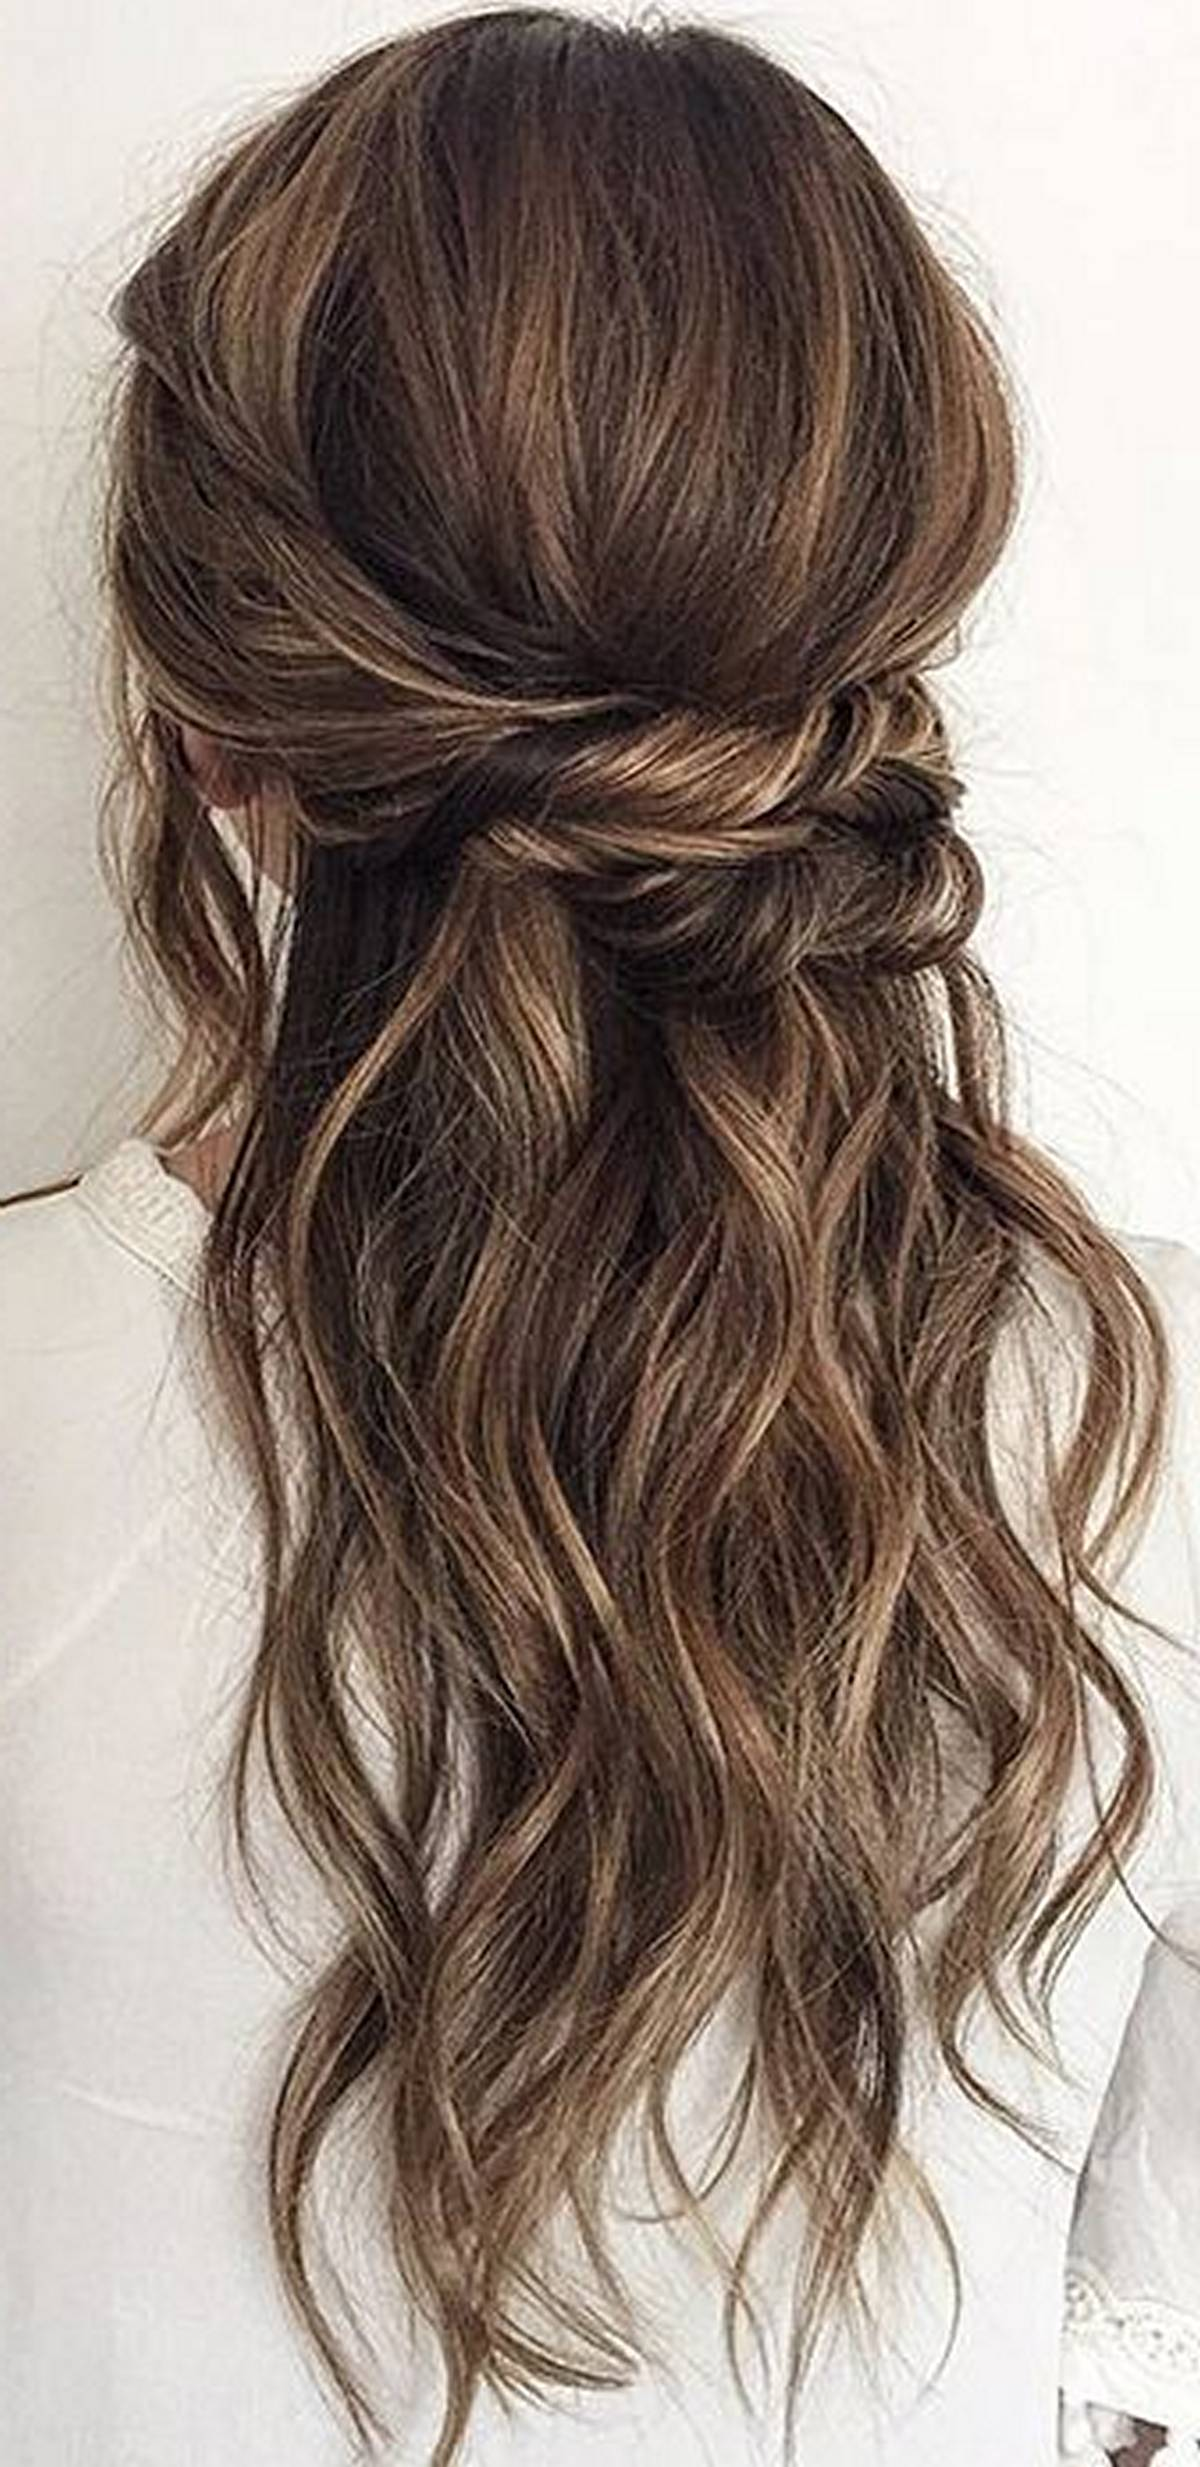 Hairstyles diy and tutorial for all hair lengths 036 | fashion